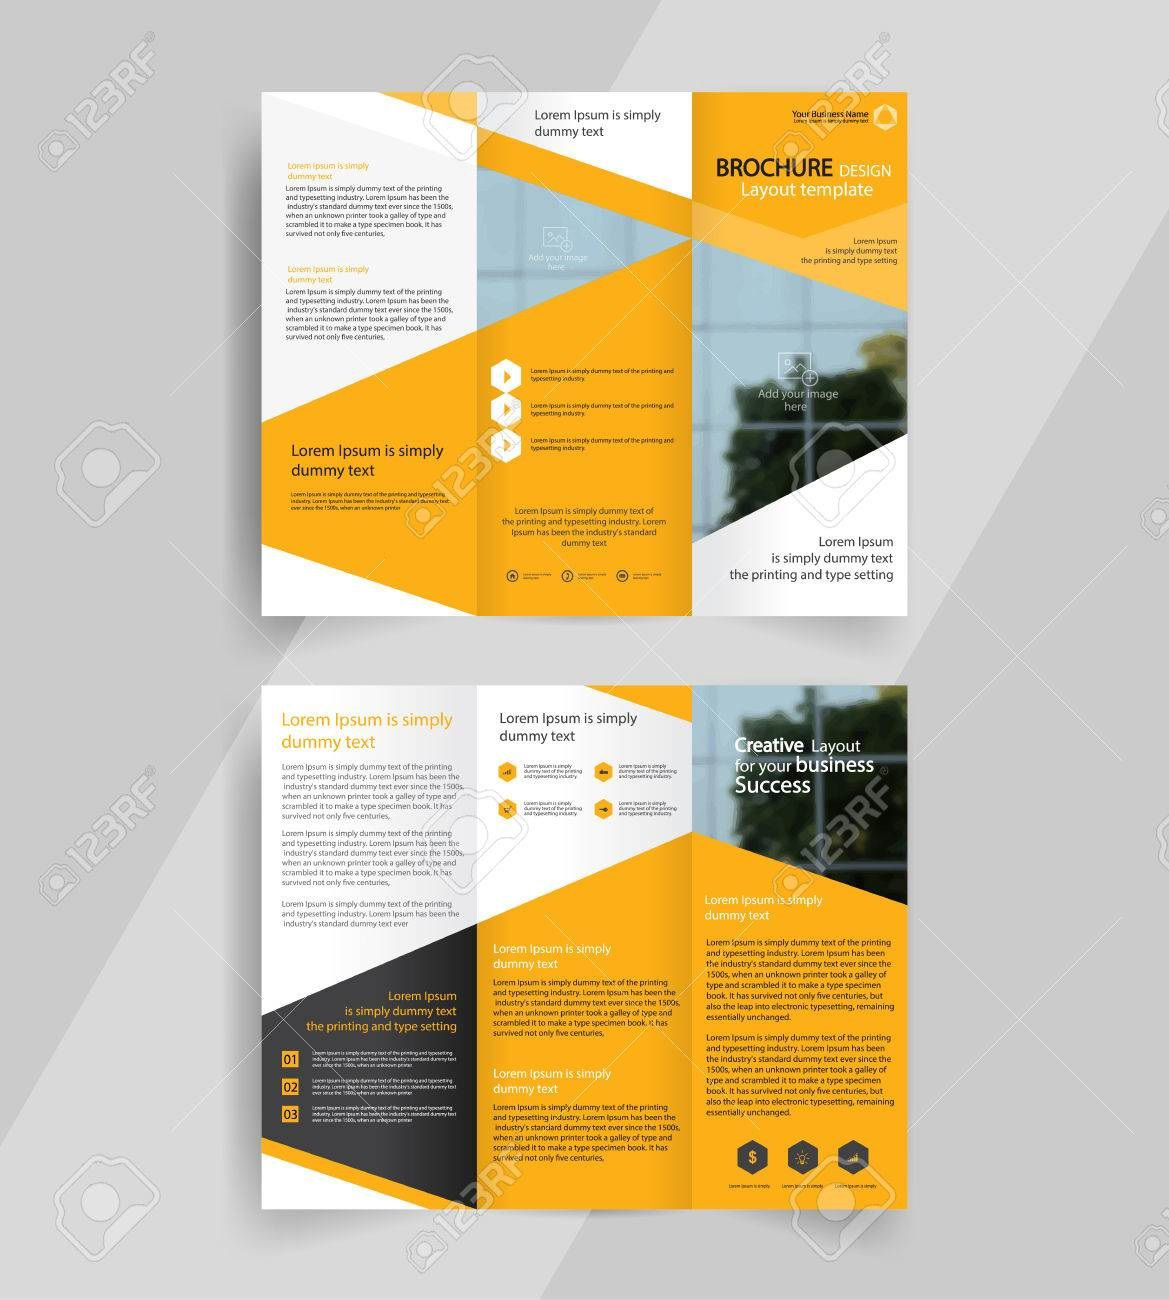 000 Imposing 3 Fold Brochure Template Concept  Templates For FreeFull